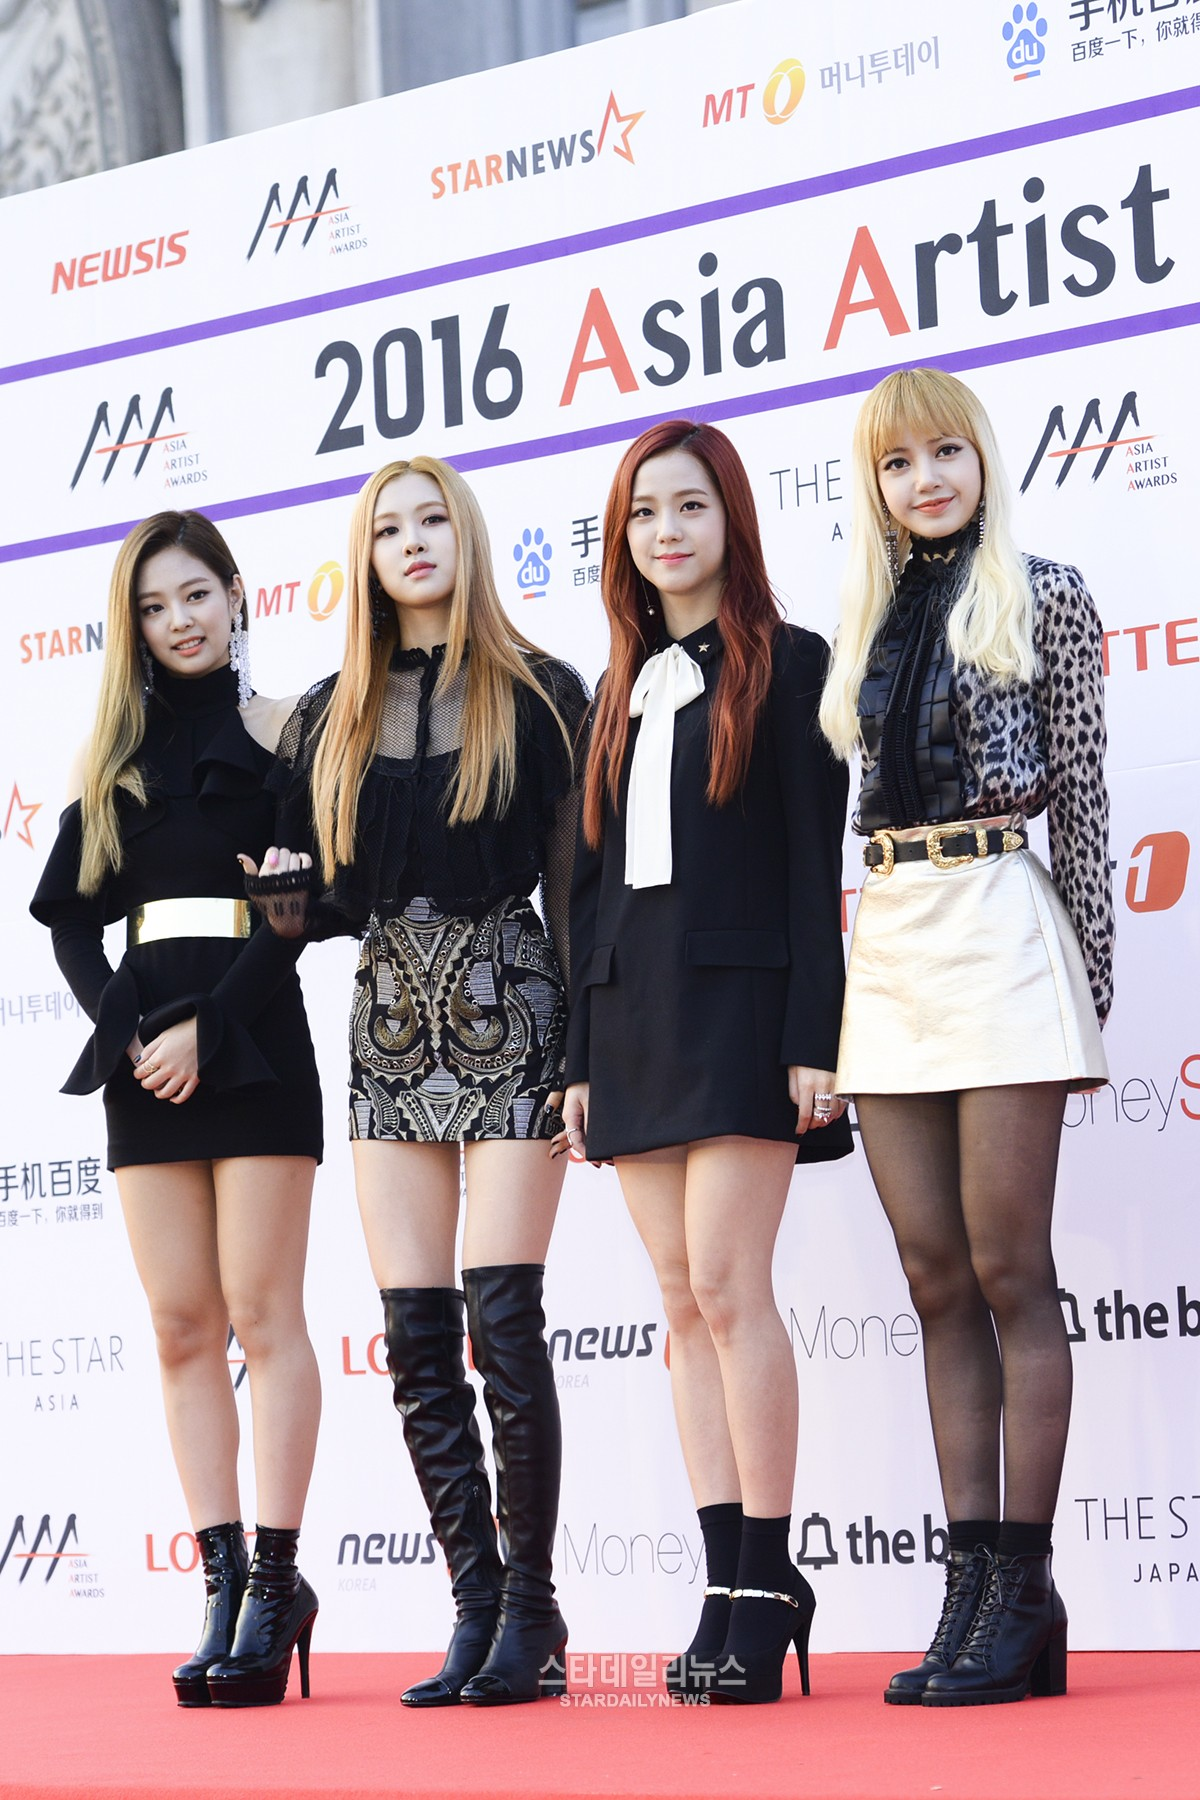 K-Pop And K-Drama Stars Shine At 2016 Asia Artist Awards Red Carpet | Soompi